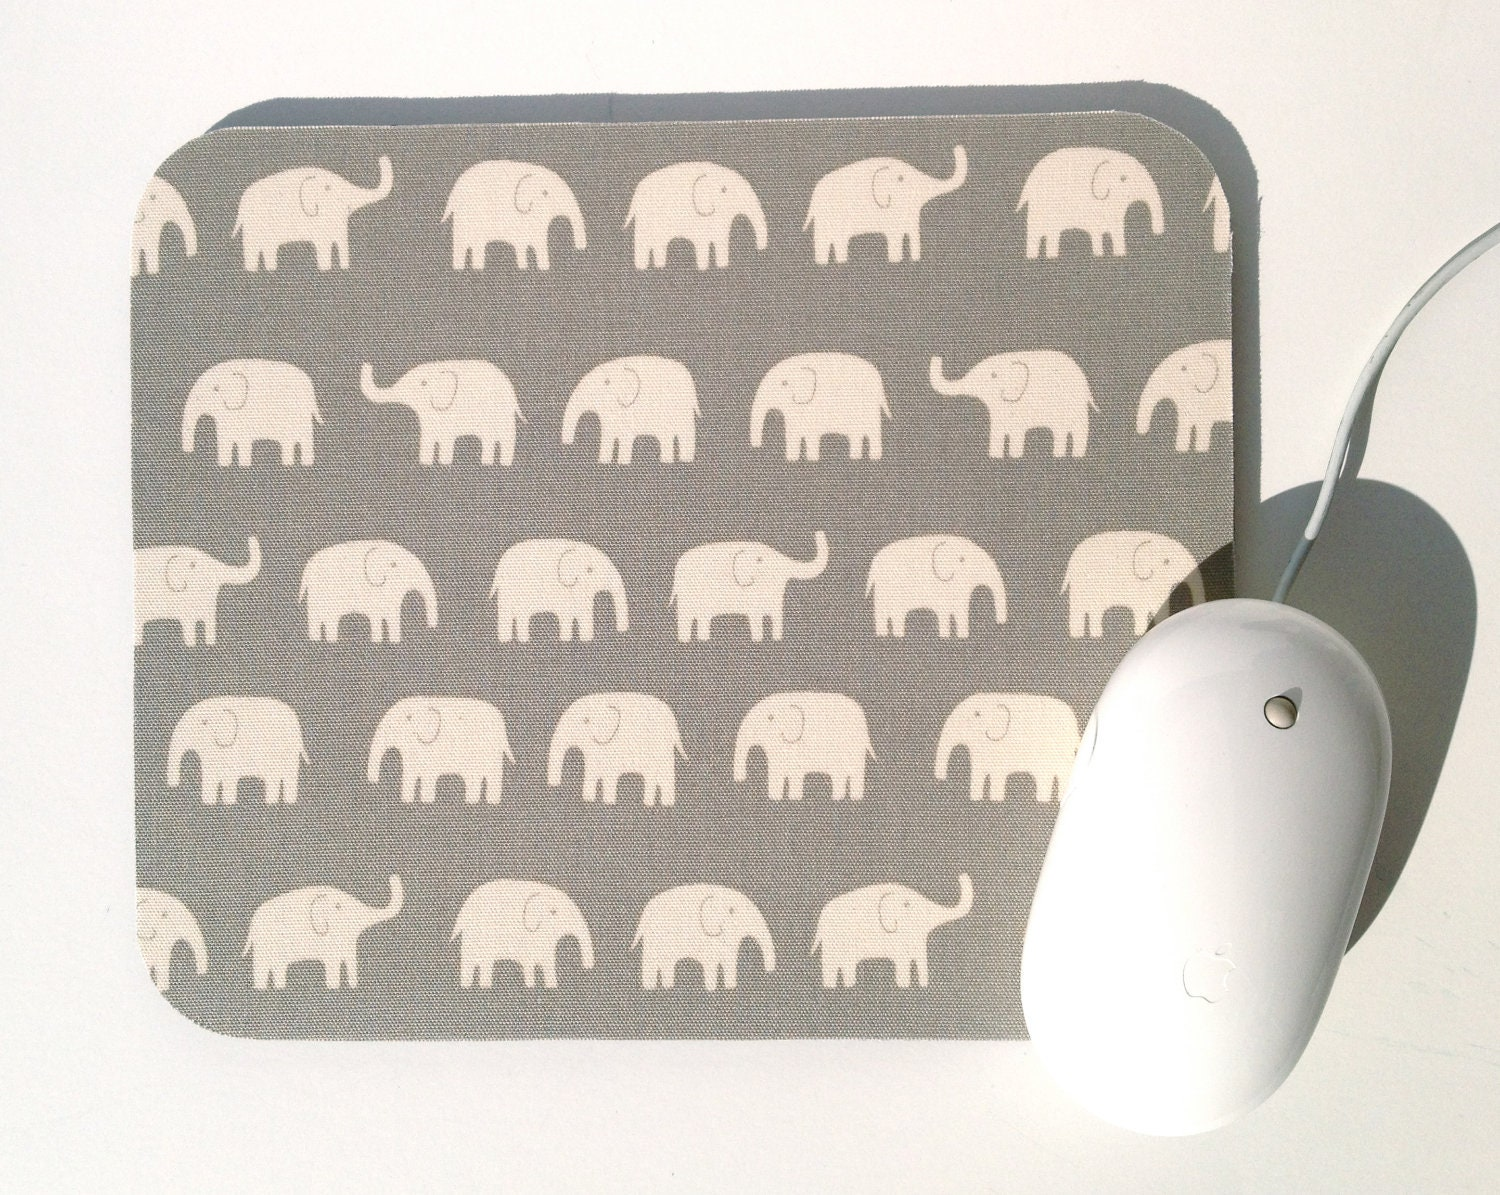 Elephant Mouse Pad / Gray And White / Modern Home Office Decor